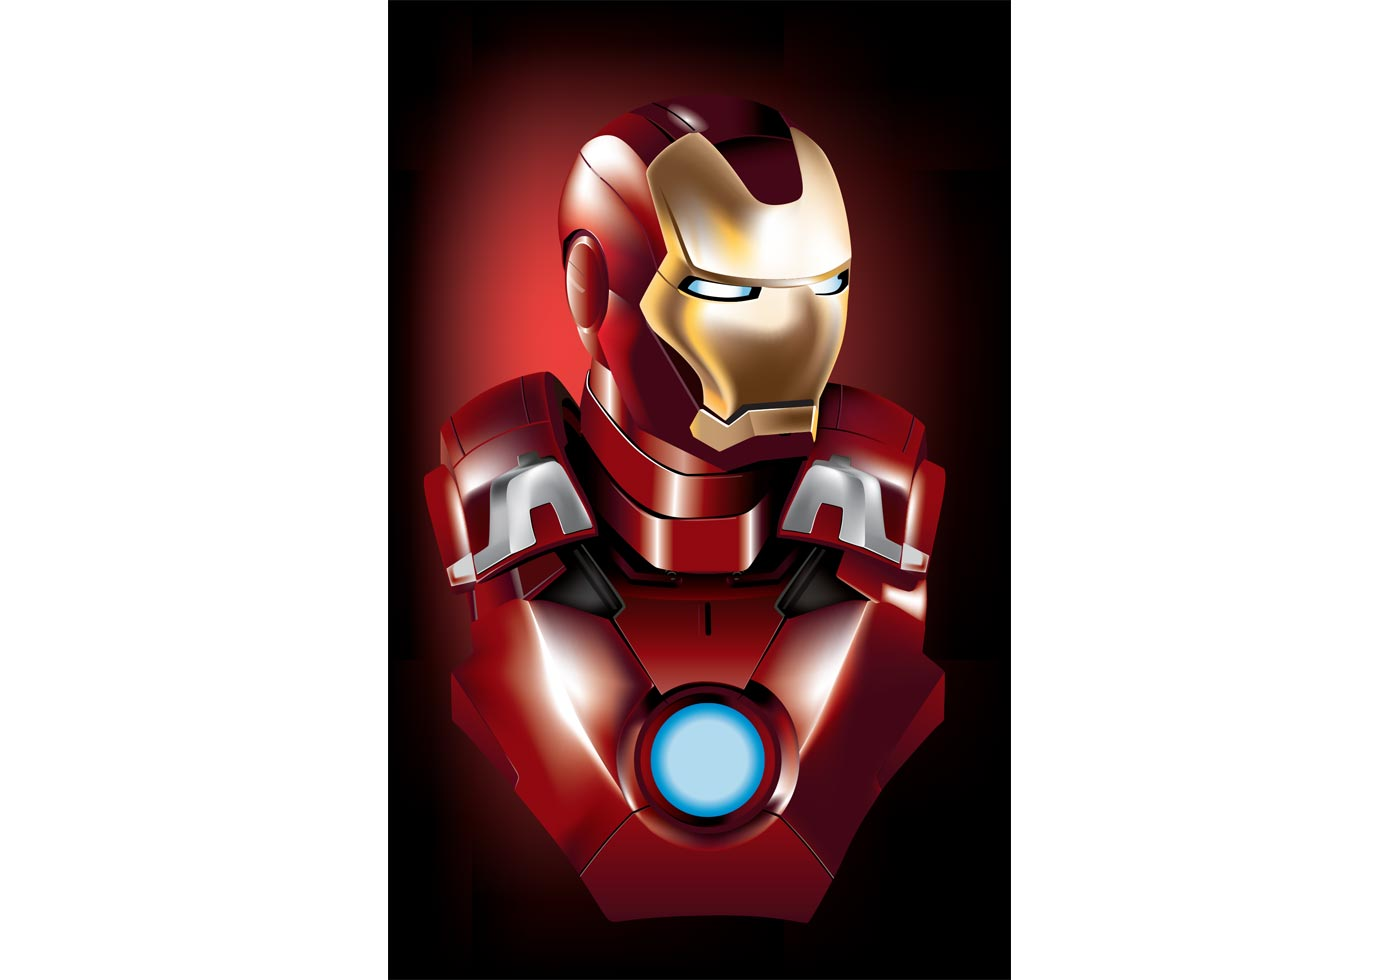 Arte Libre Iron Man Vector Superhero Free Vector Art At Vecteezy